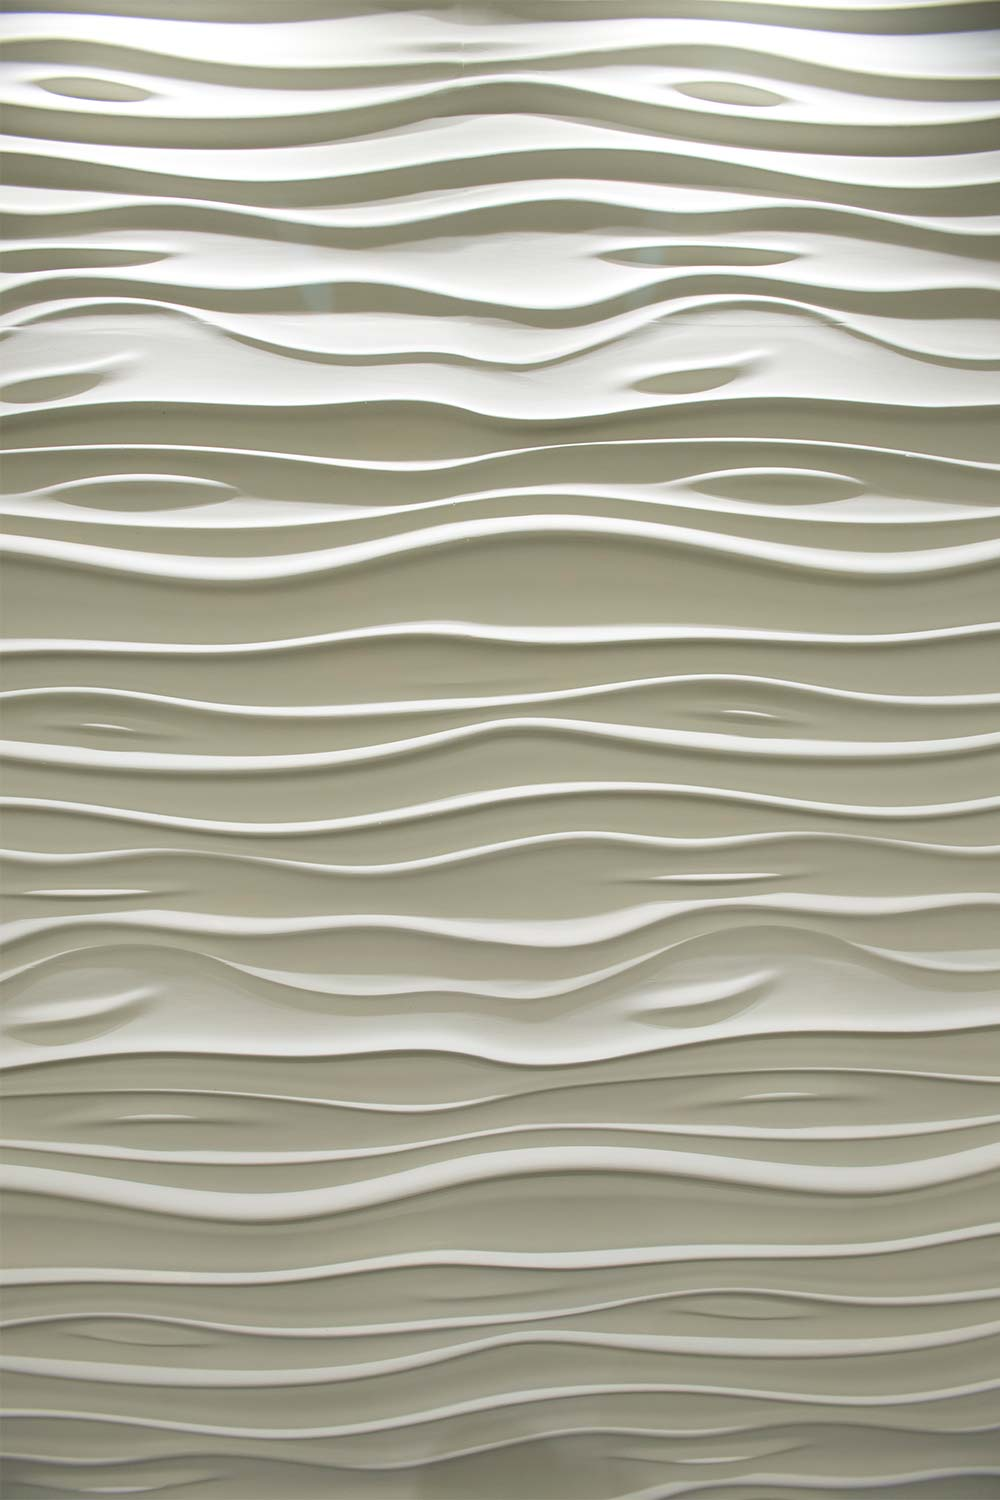 On location, a funky wave-pattern tile wall lit from above